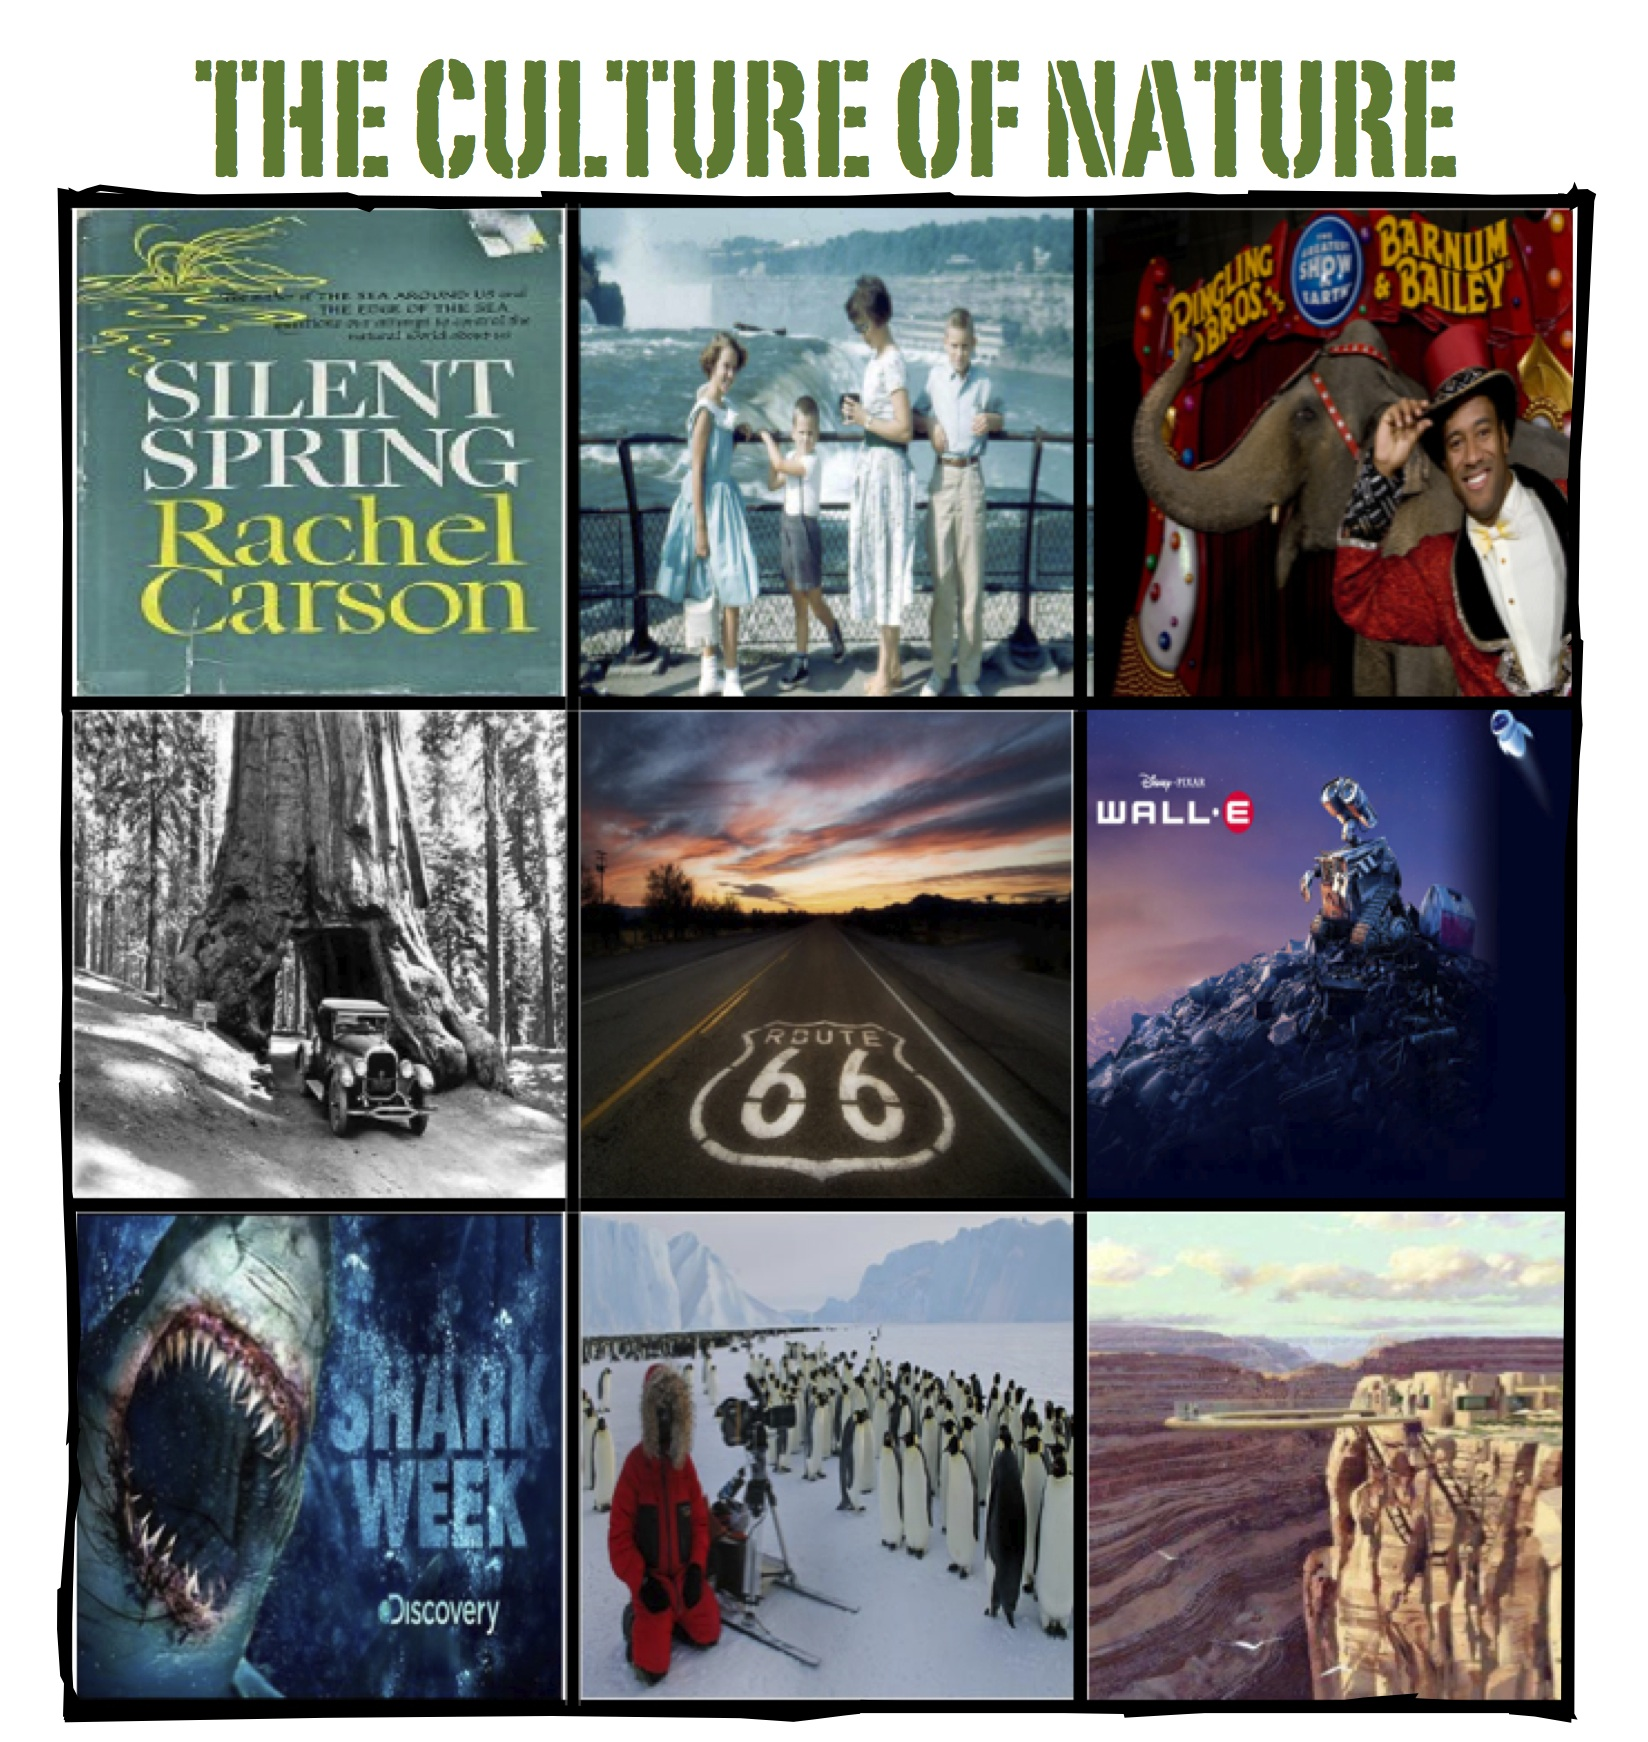 The Culture of Nature Flyer Image.jpg